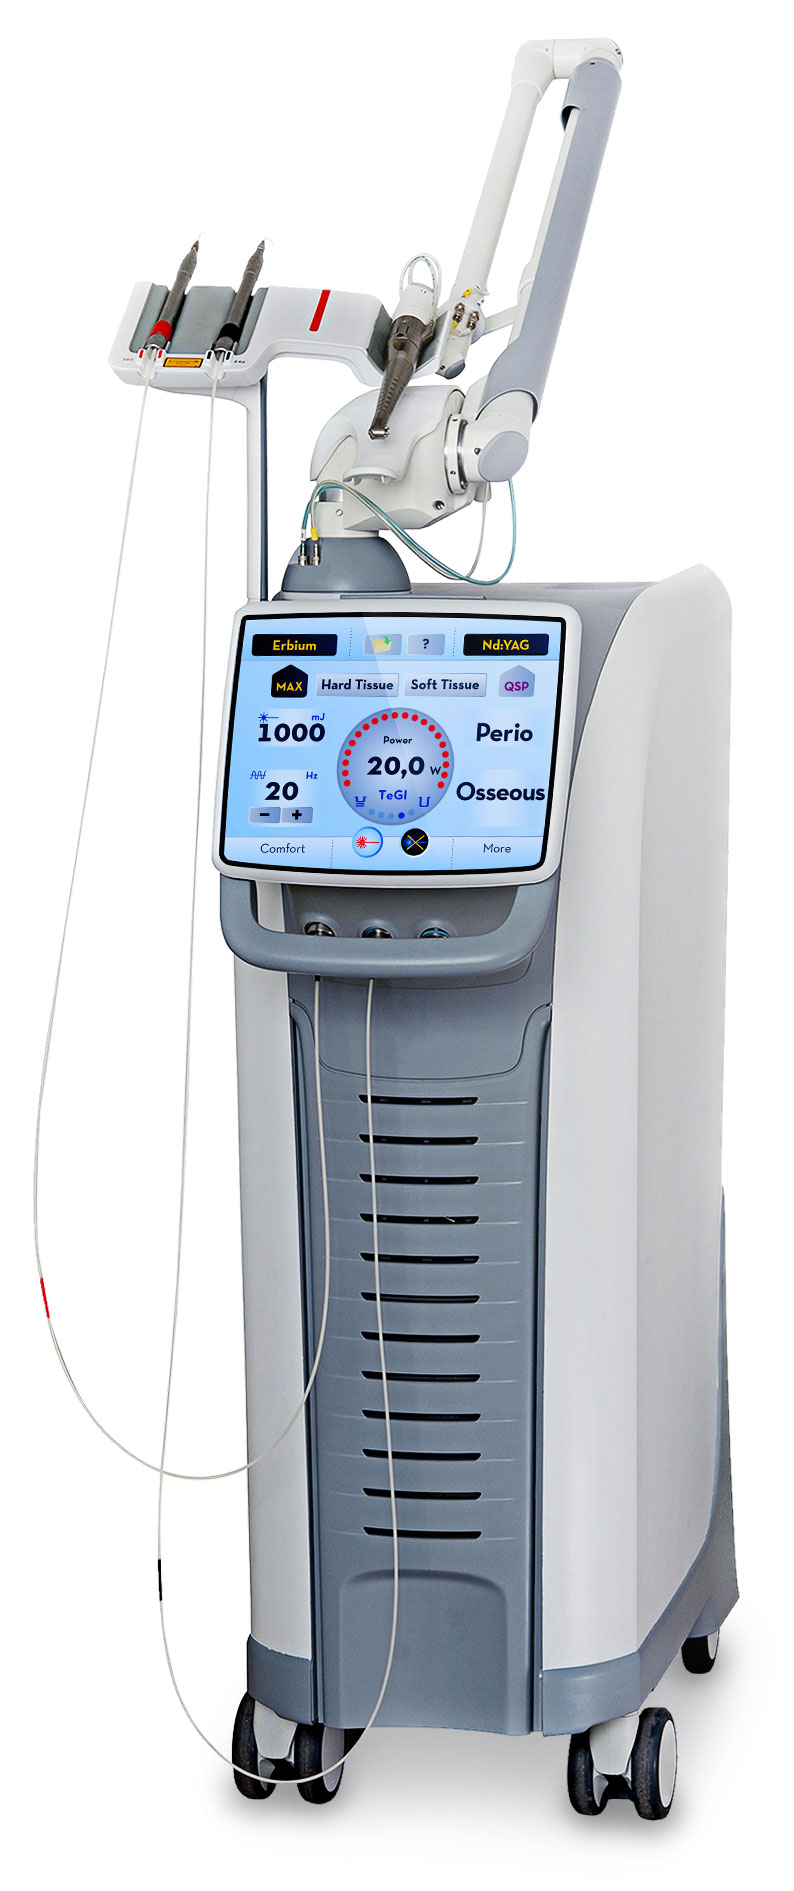 Lightwalker ATS Dual Wavelength Dental Laser